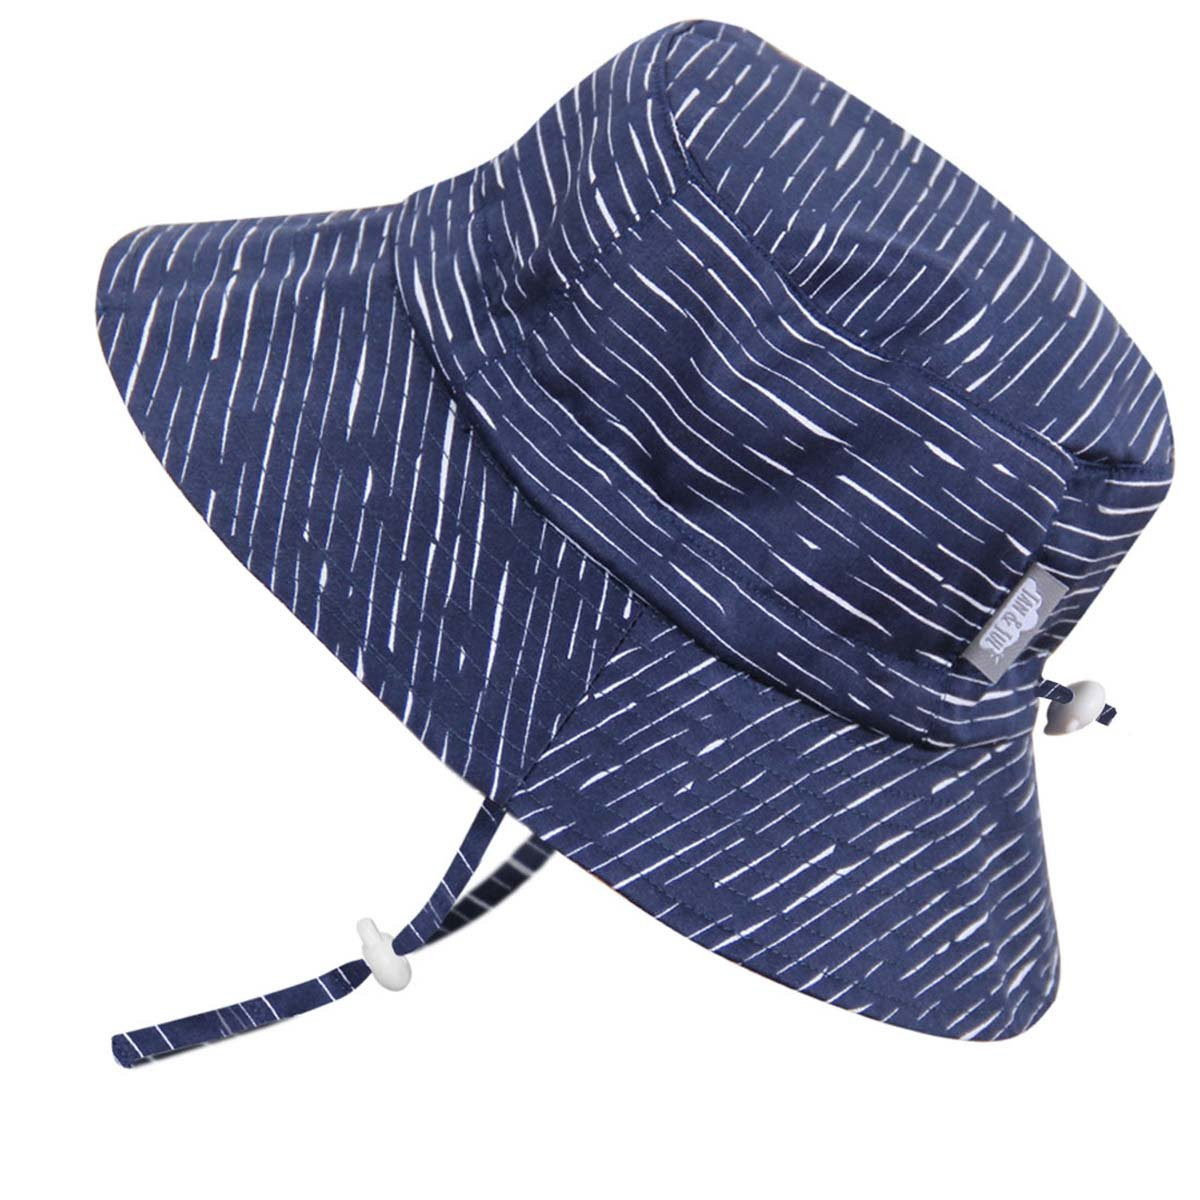 Adjustable for Grow Jan /& Jul Baby Toddler Kids Breathable Cotton Sun Hat 50 UPF Stay-on